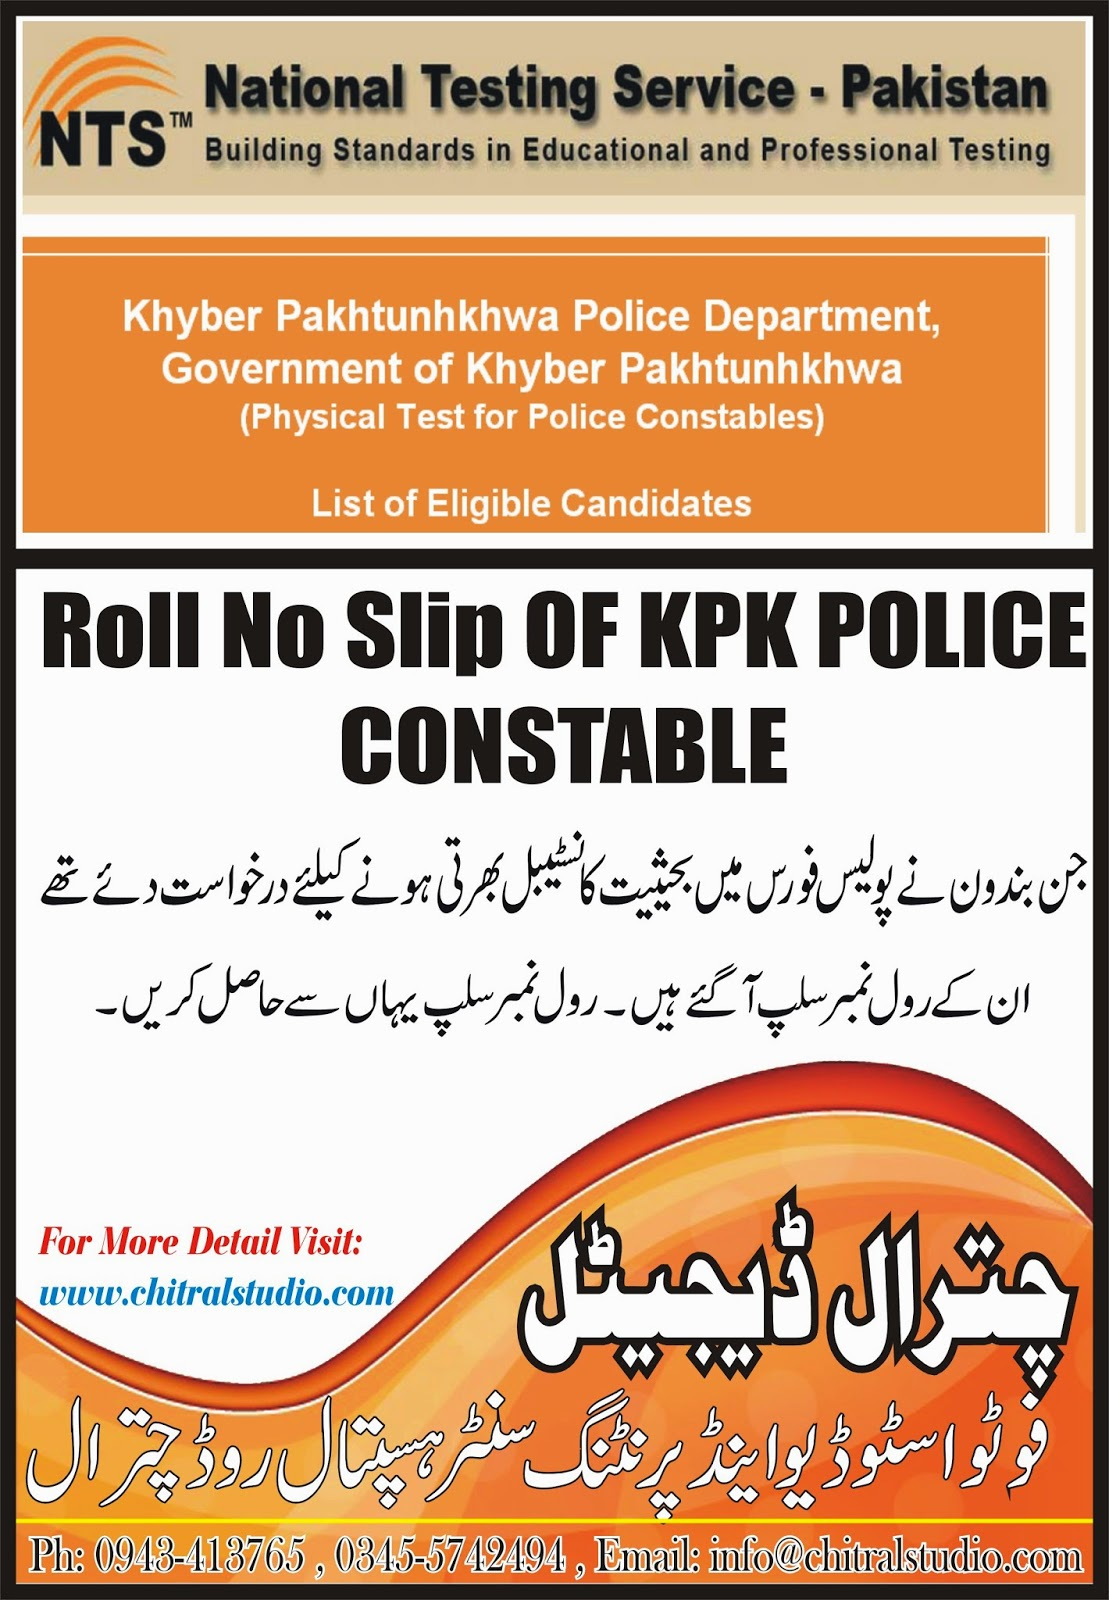 NTS Uploaded the Roll No Slips of Eligible Candidate, KPK